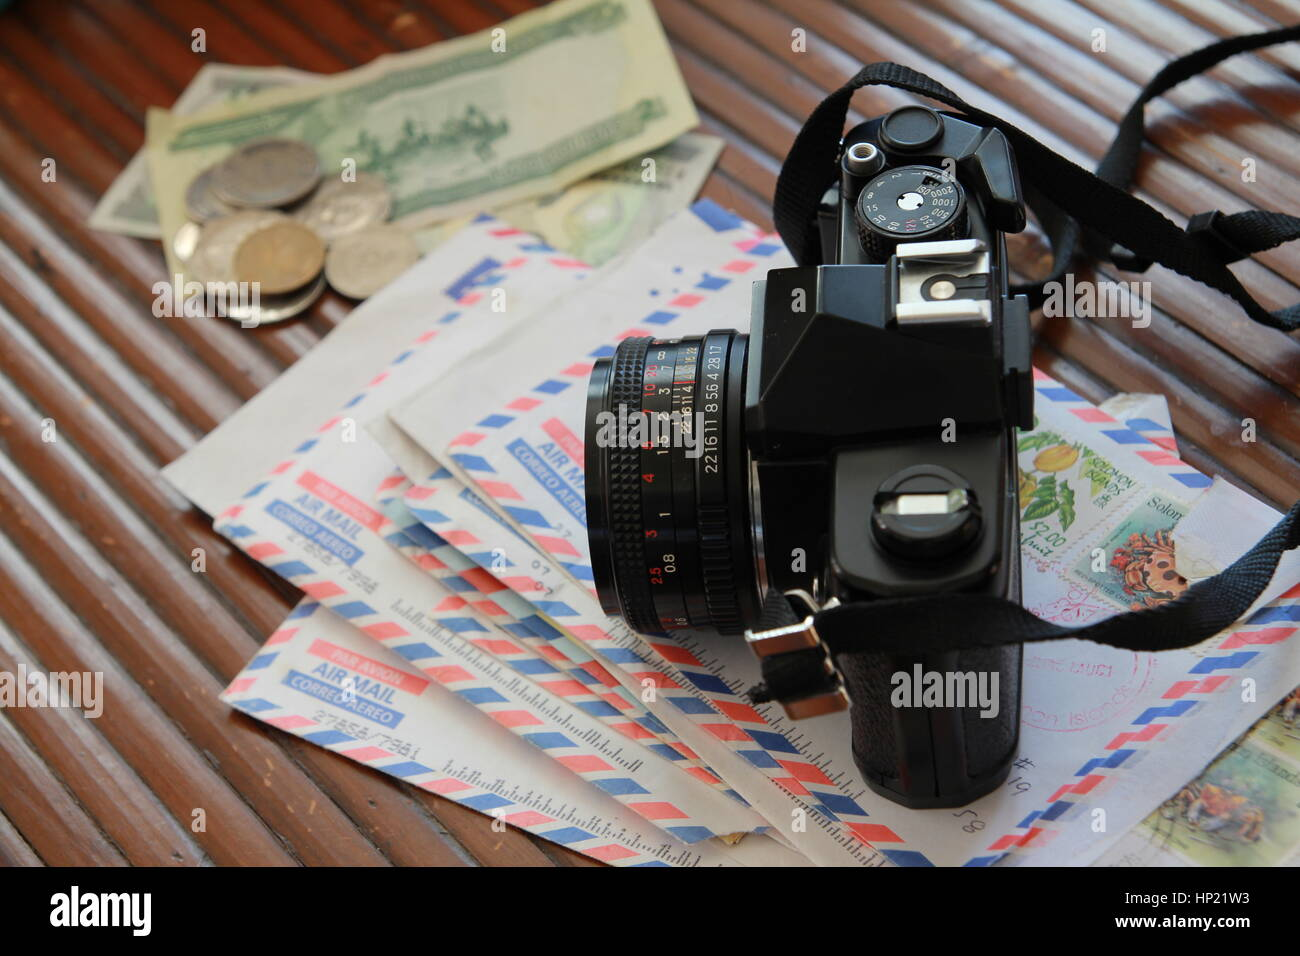 Film camera on stack of air mail letters - Stock Image